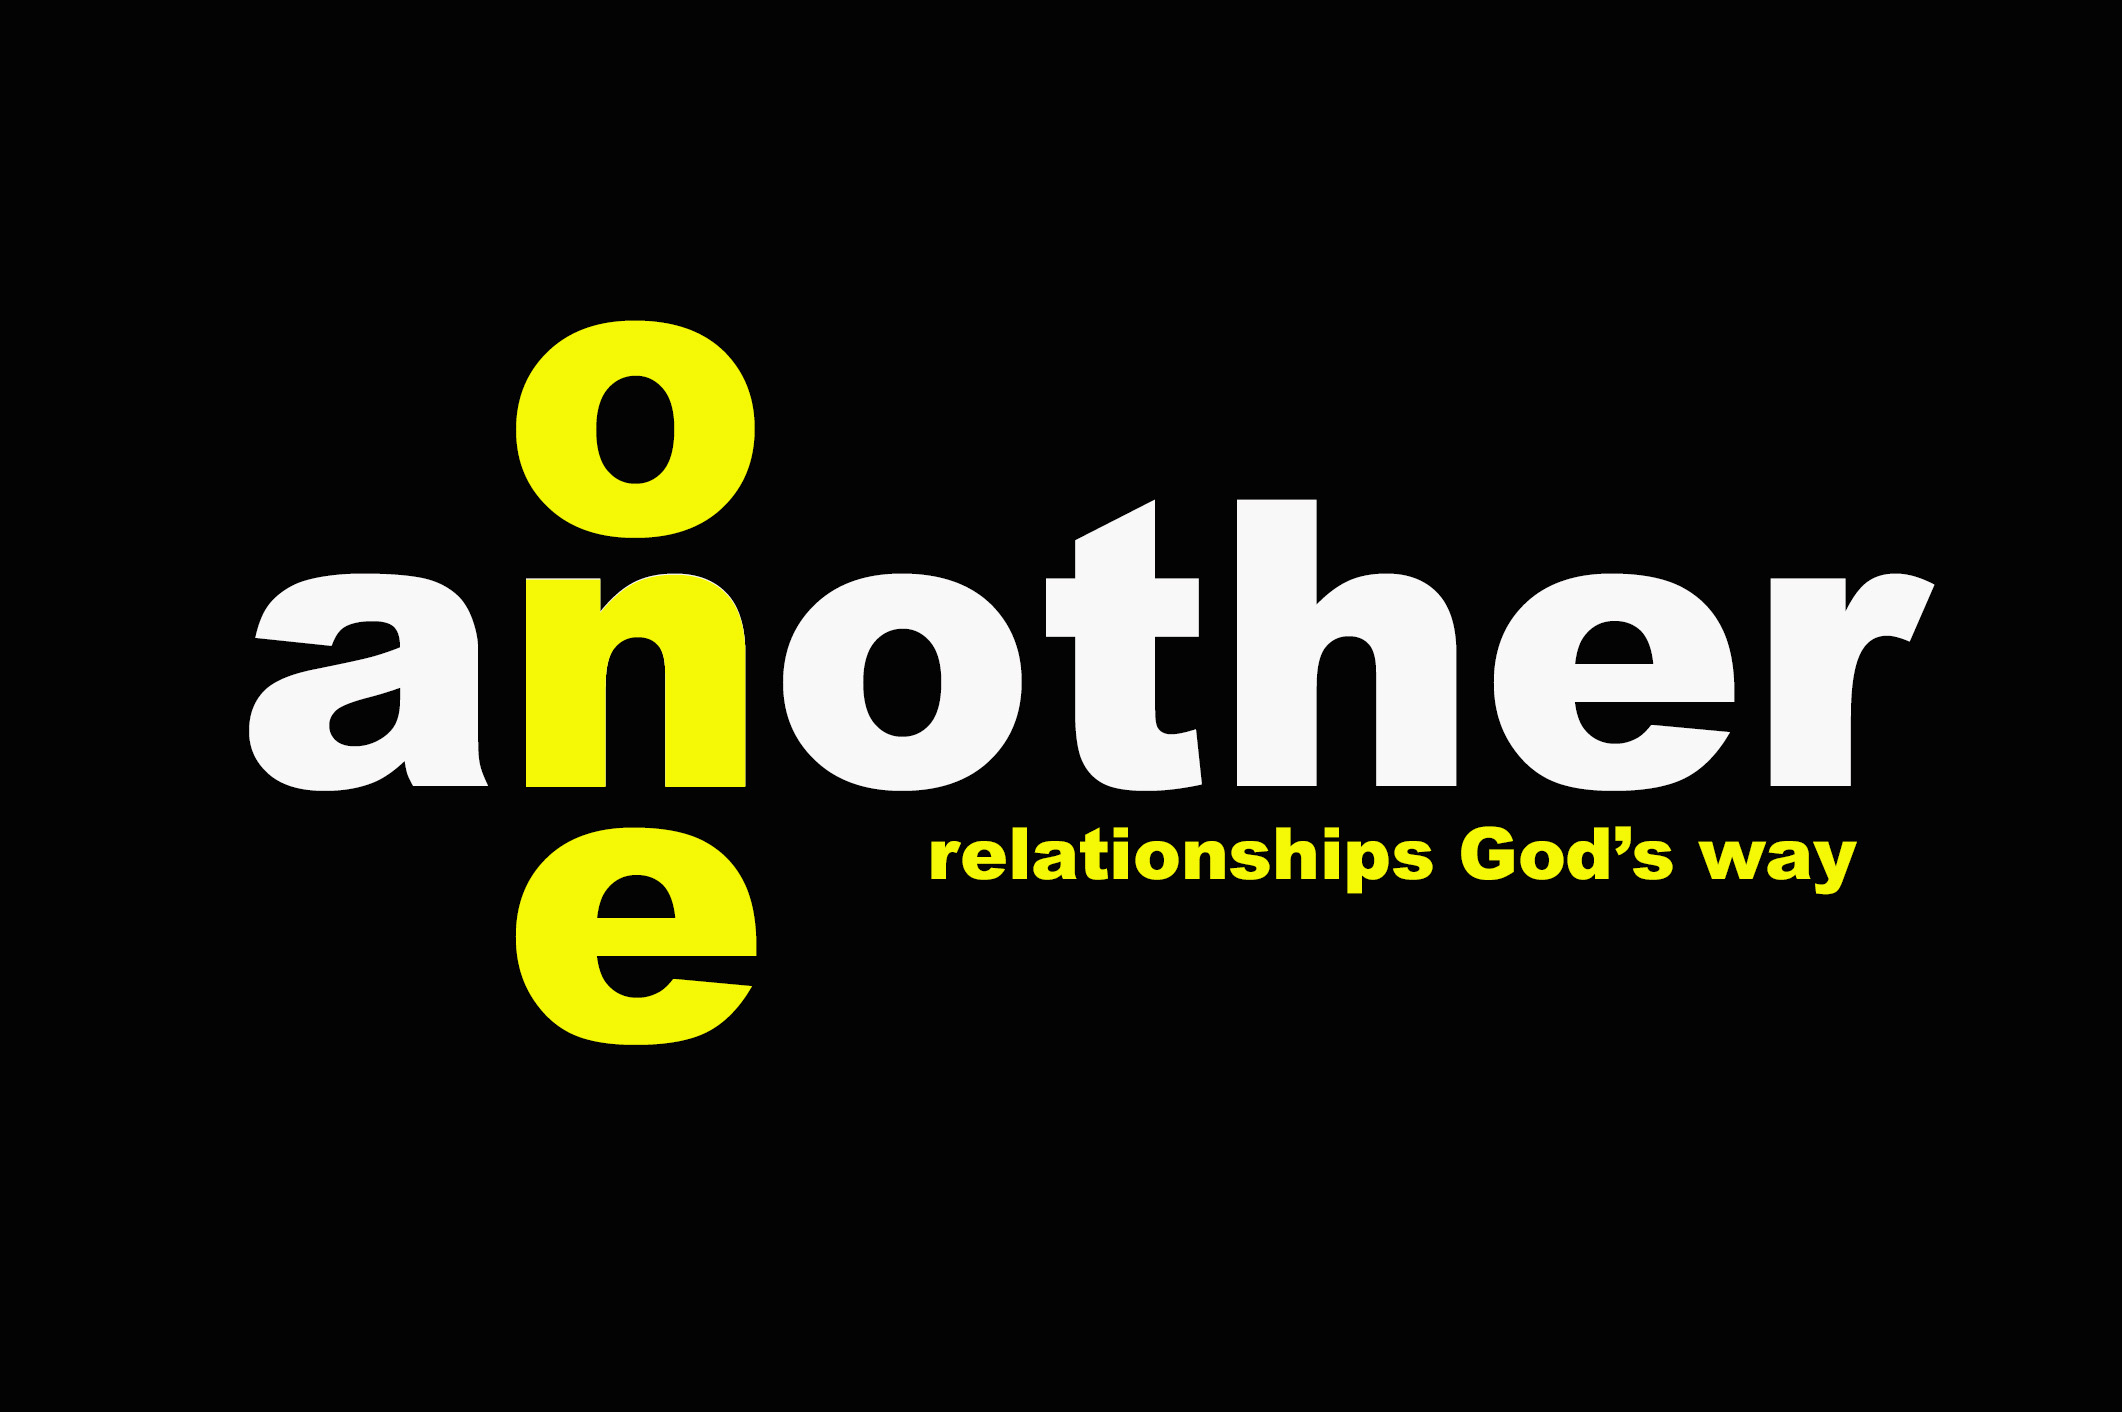 One Another - Forgive One Another